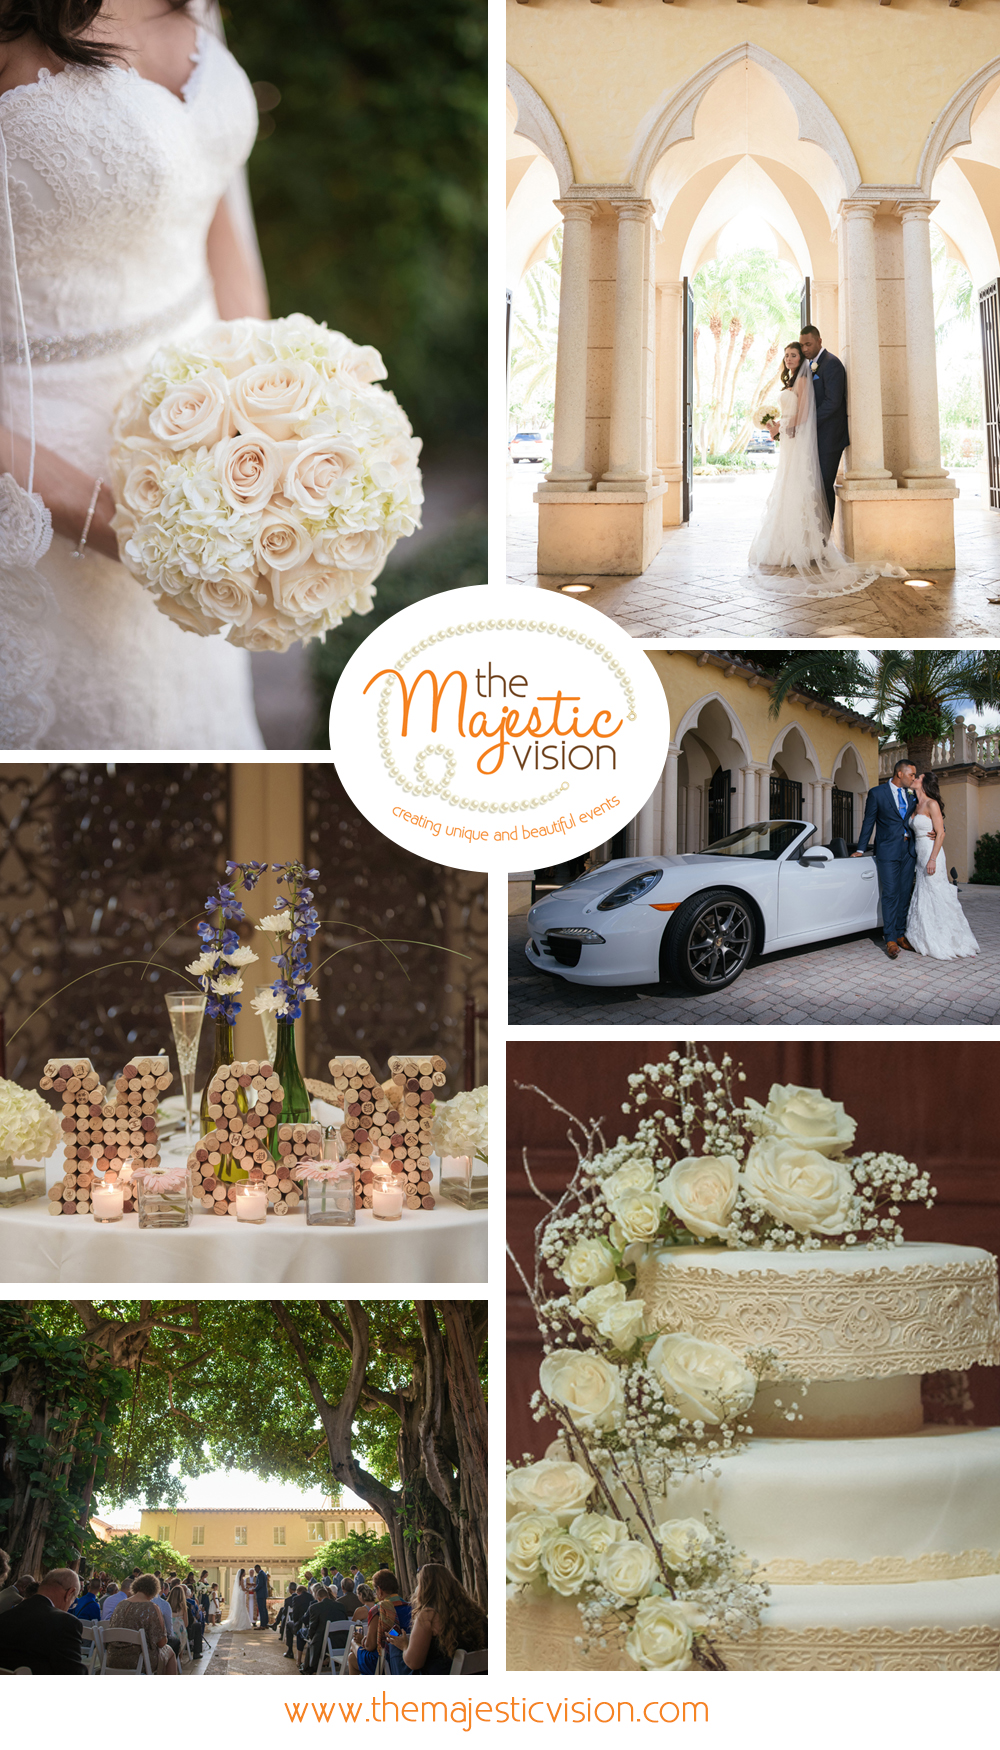 Wine Themed Wedding | The Majestic Vision Wedding Planning | The Addison Boca Raton in Boca Raton, FL | www.themajesticvision.com | Robert Madrid Photography